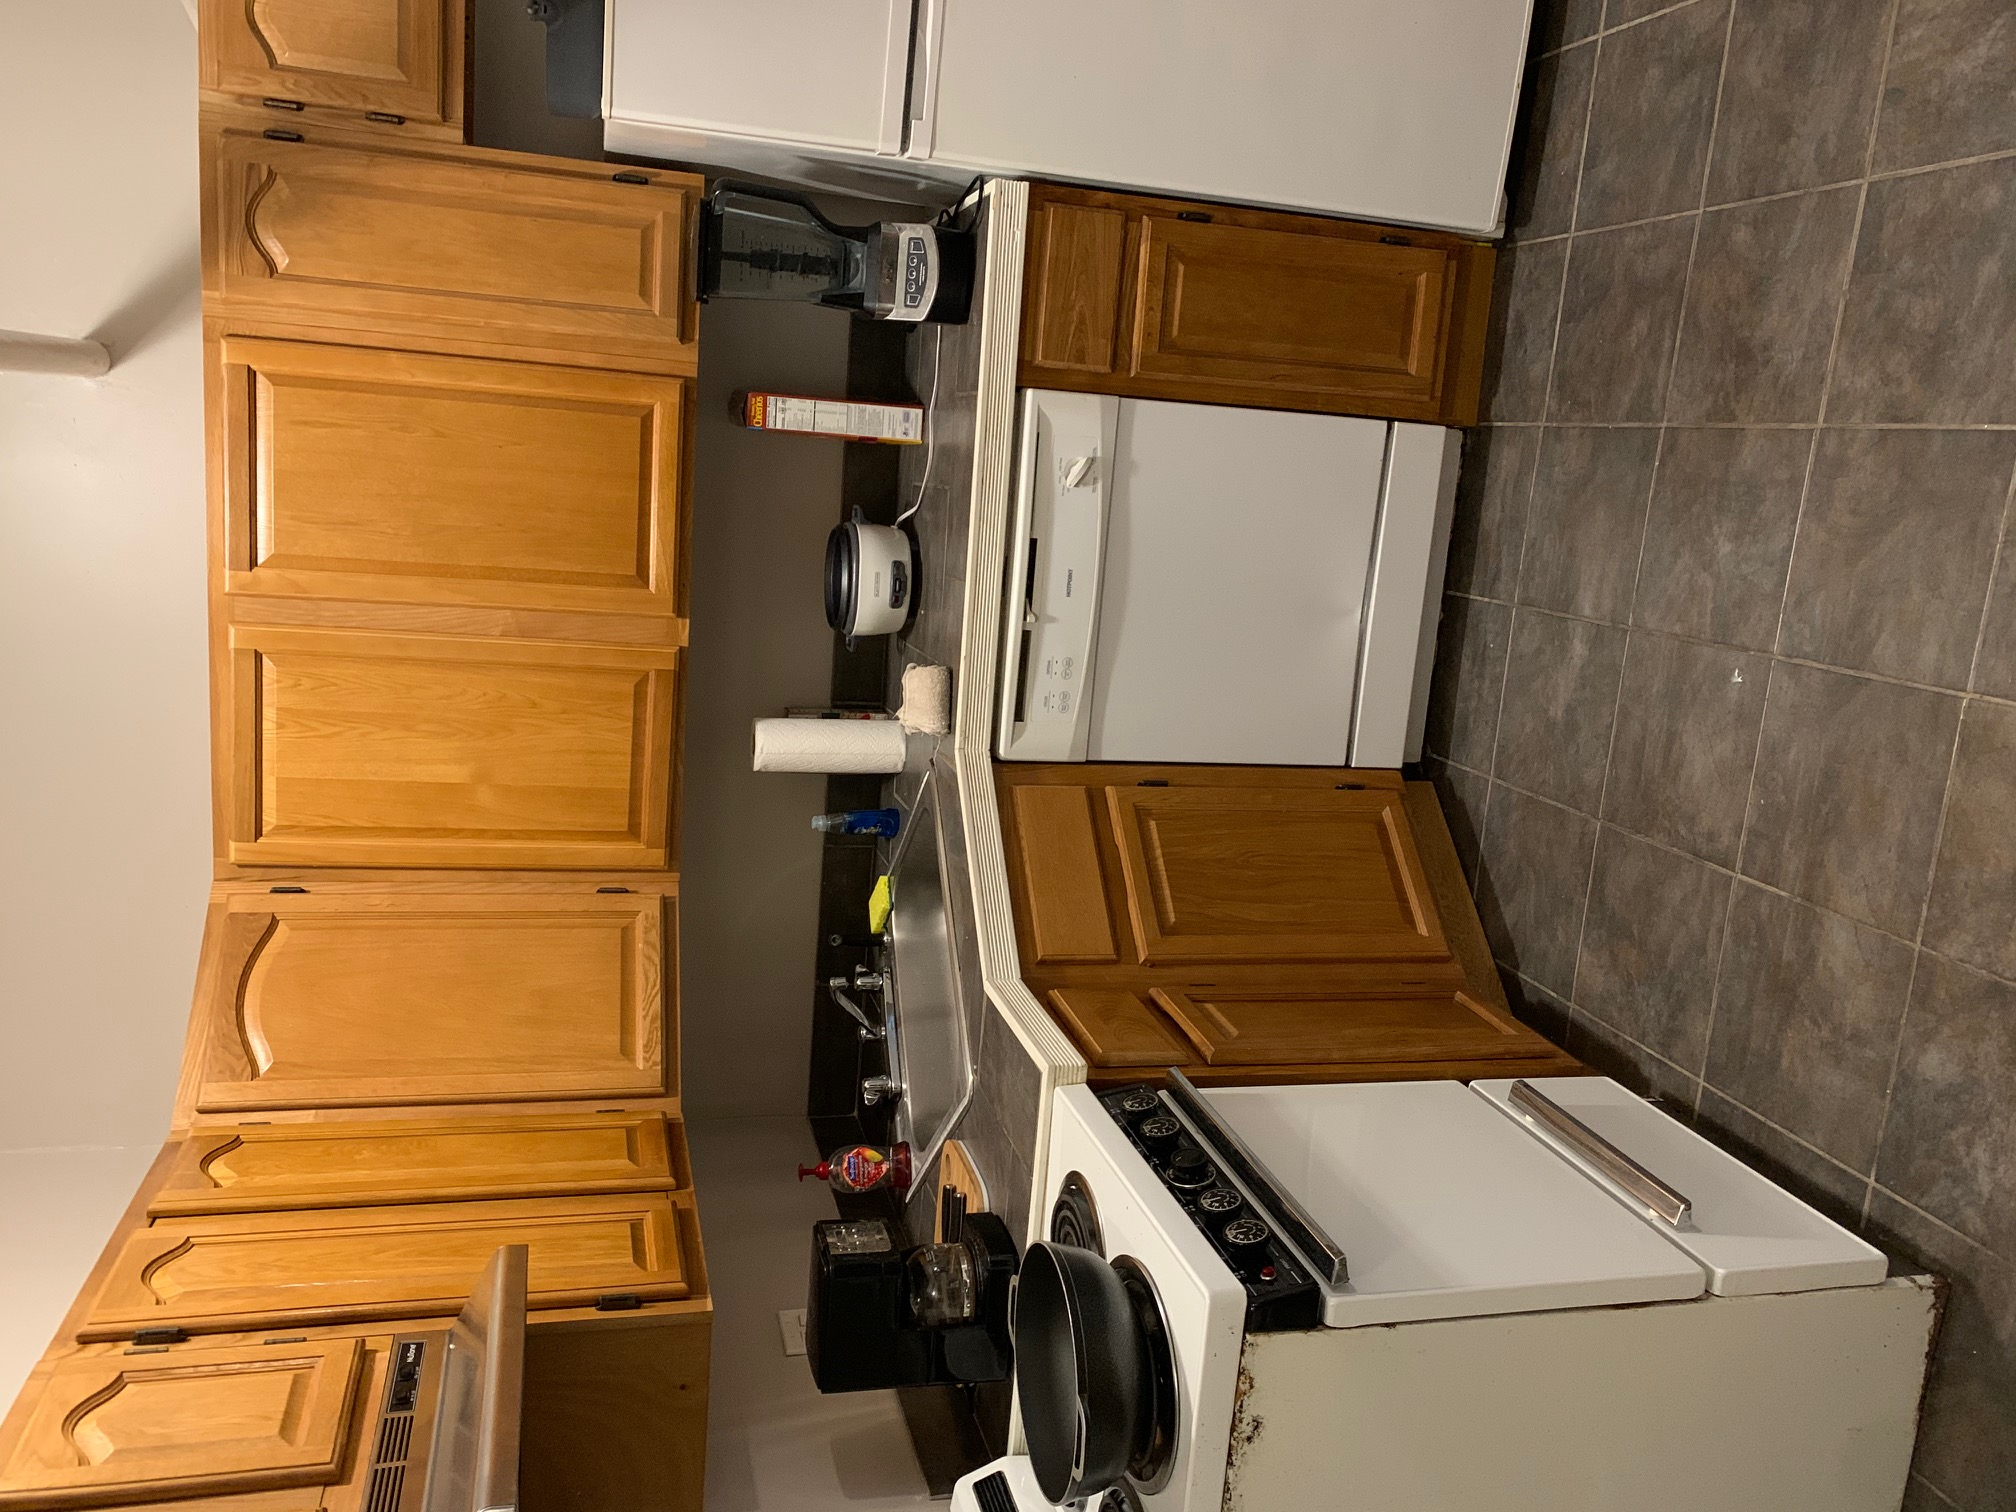 Pictures of  property for rent on Commonwealth Ave., Boston, MA 02215